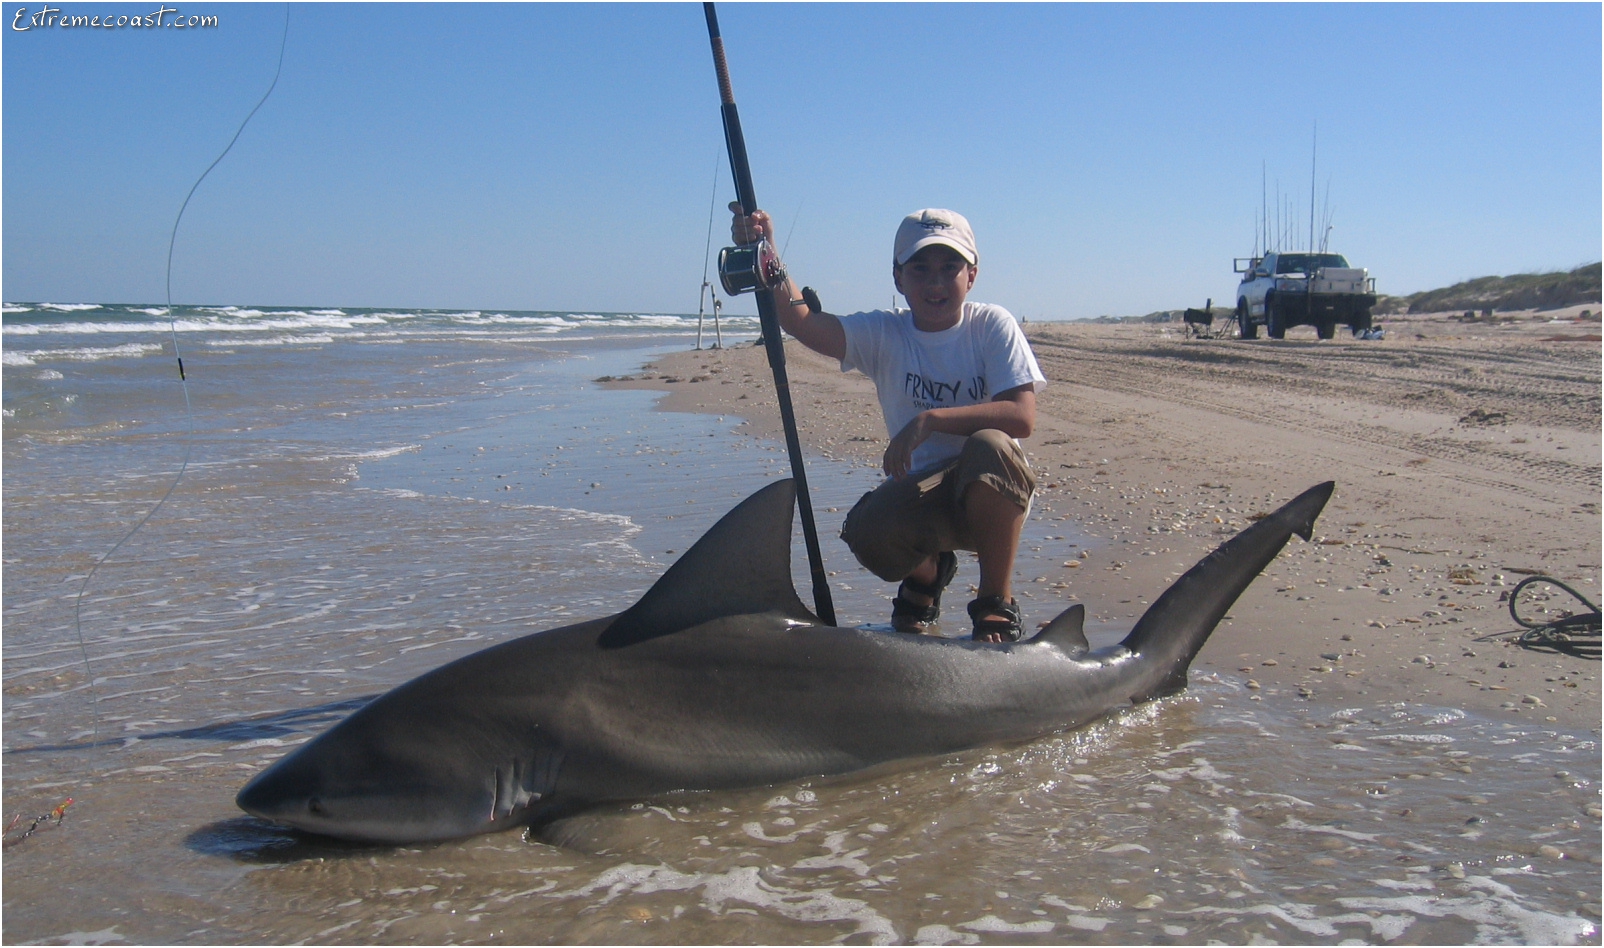 Sportfishing padre island national seashore u s for Padre island national seashore fishing report